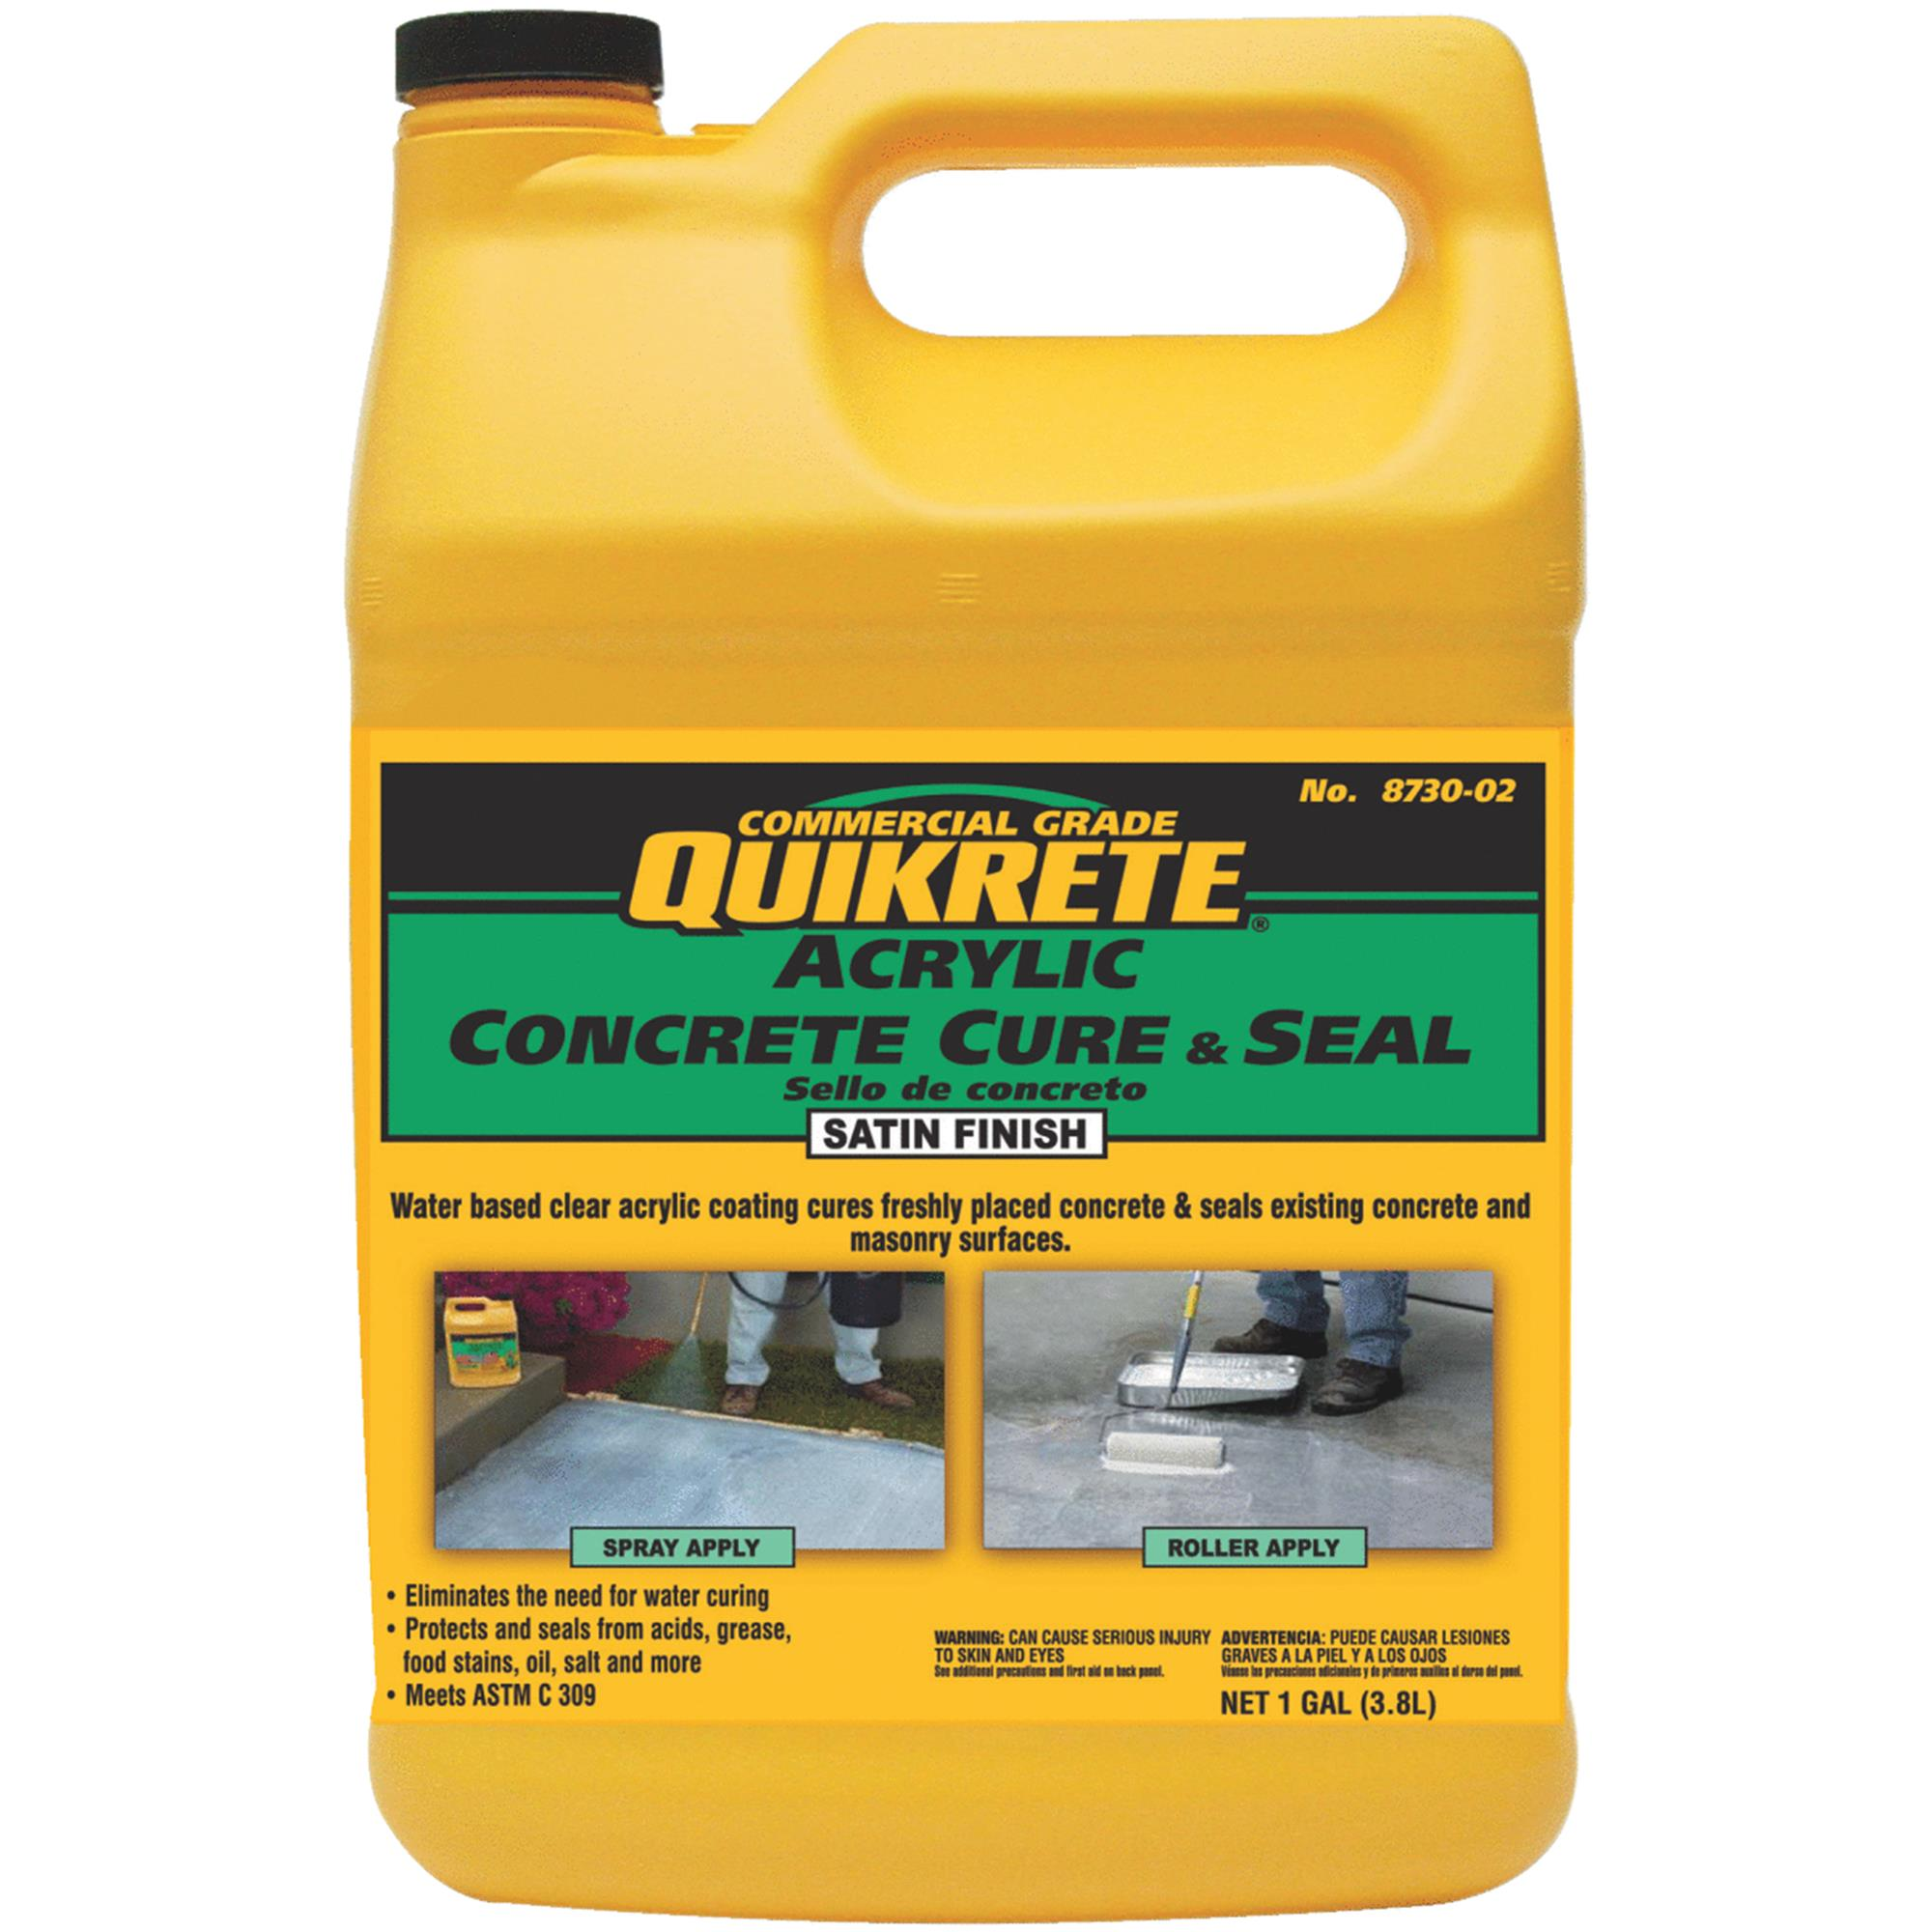 Quikrete Concrete Cure And Seal Satin Finish Concrete Sealer by Quikrete